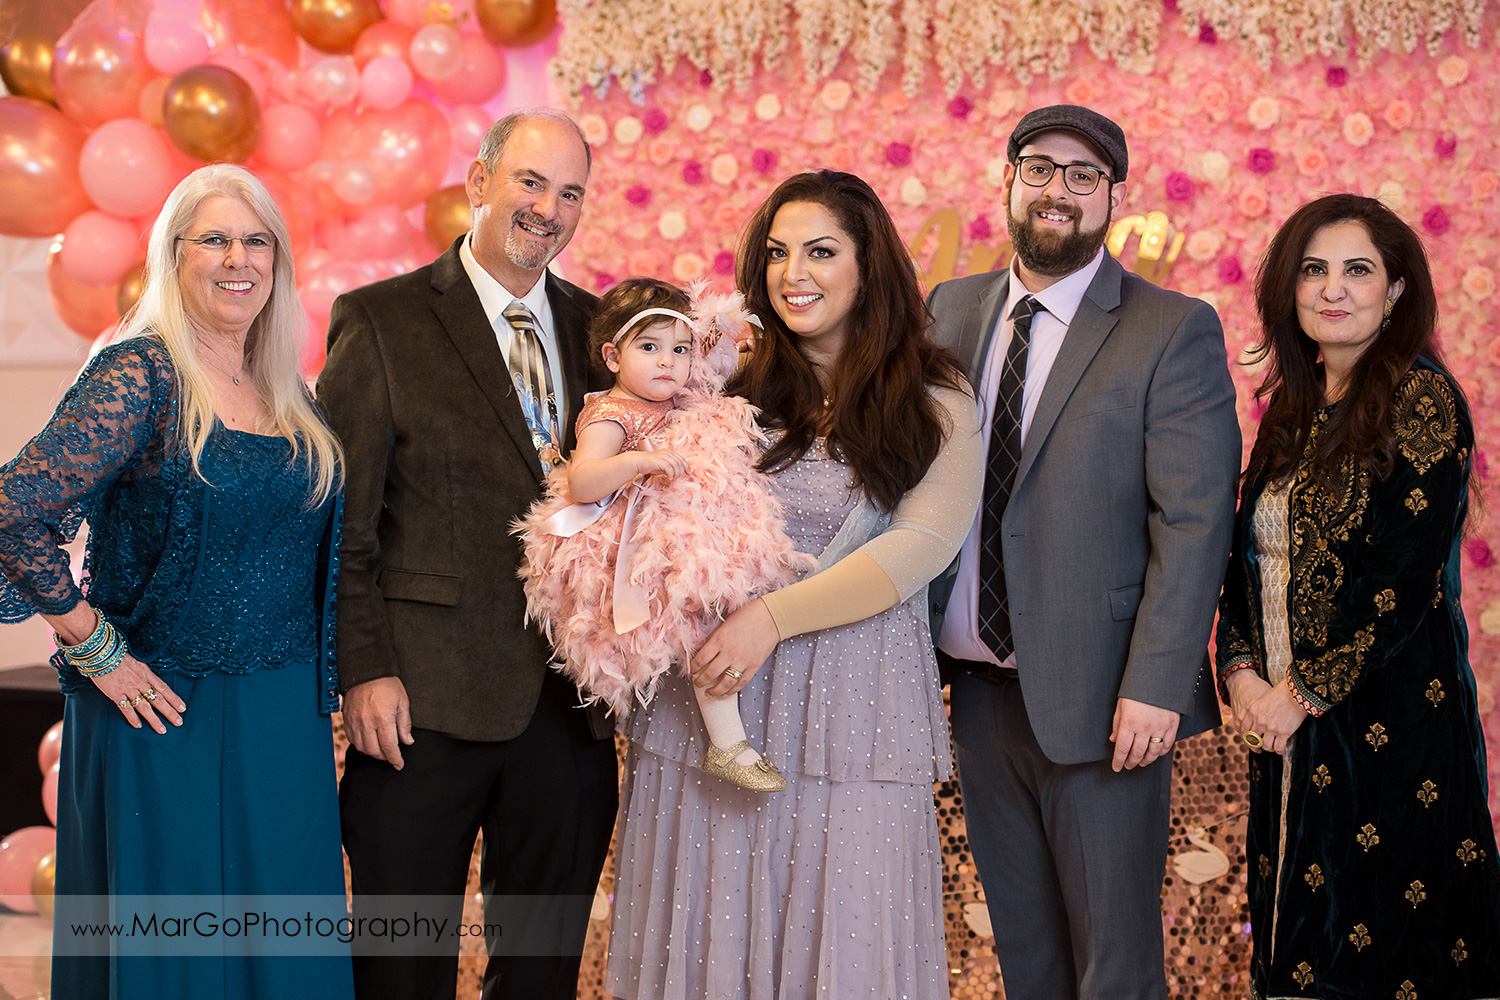 family portrait on pink and white roses wall at Newark Oasis Palace